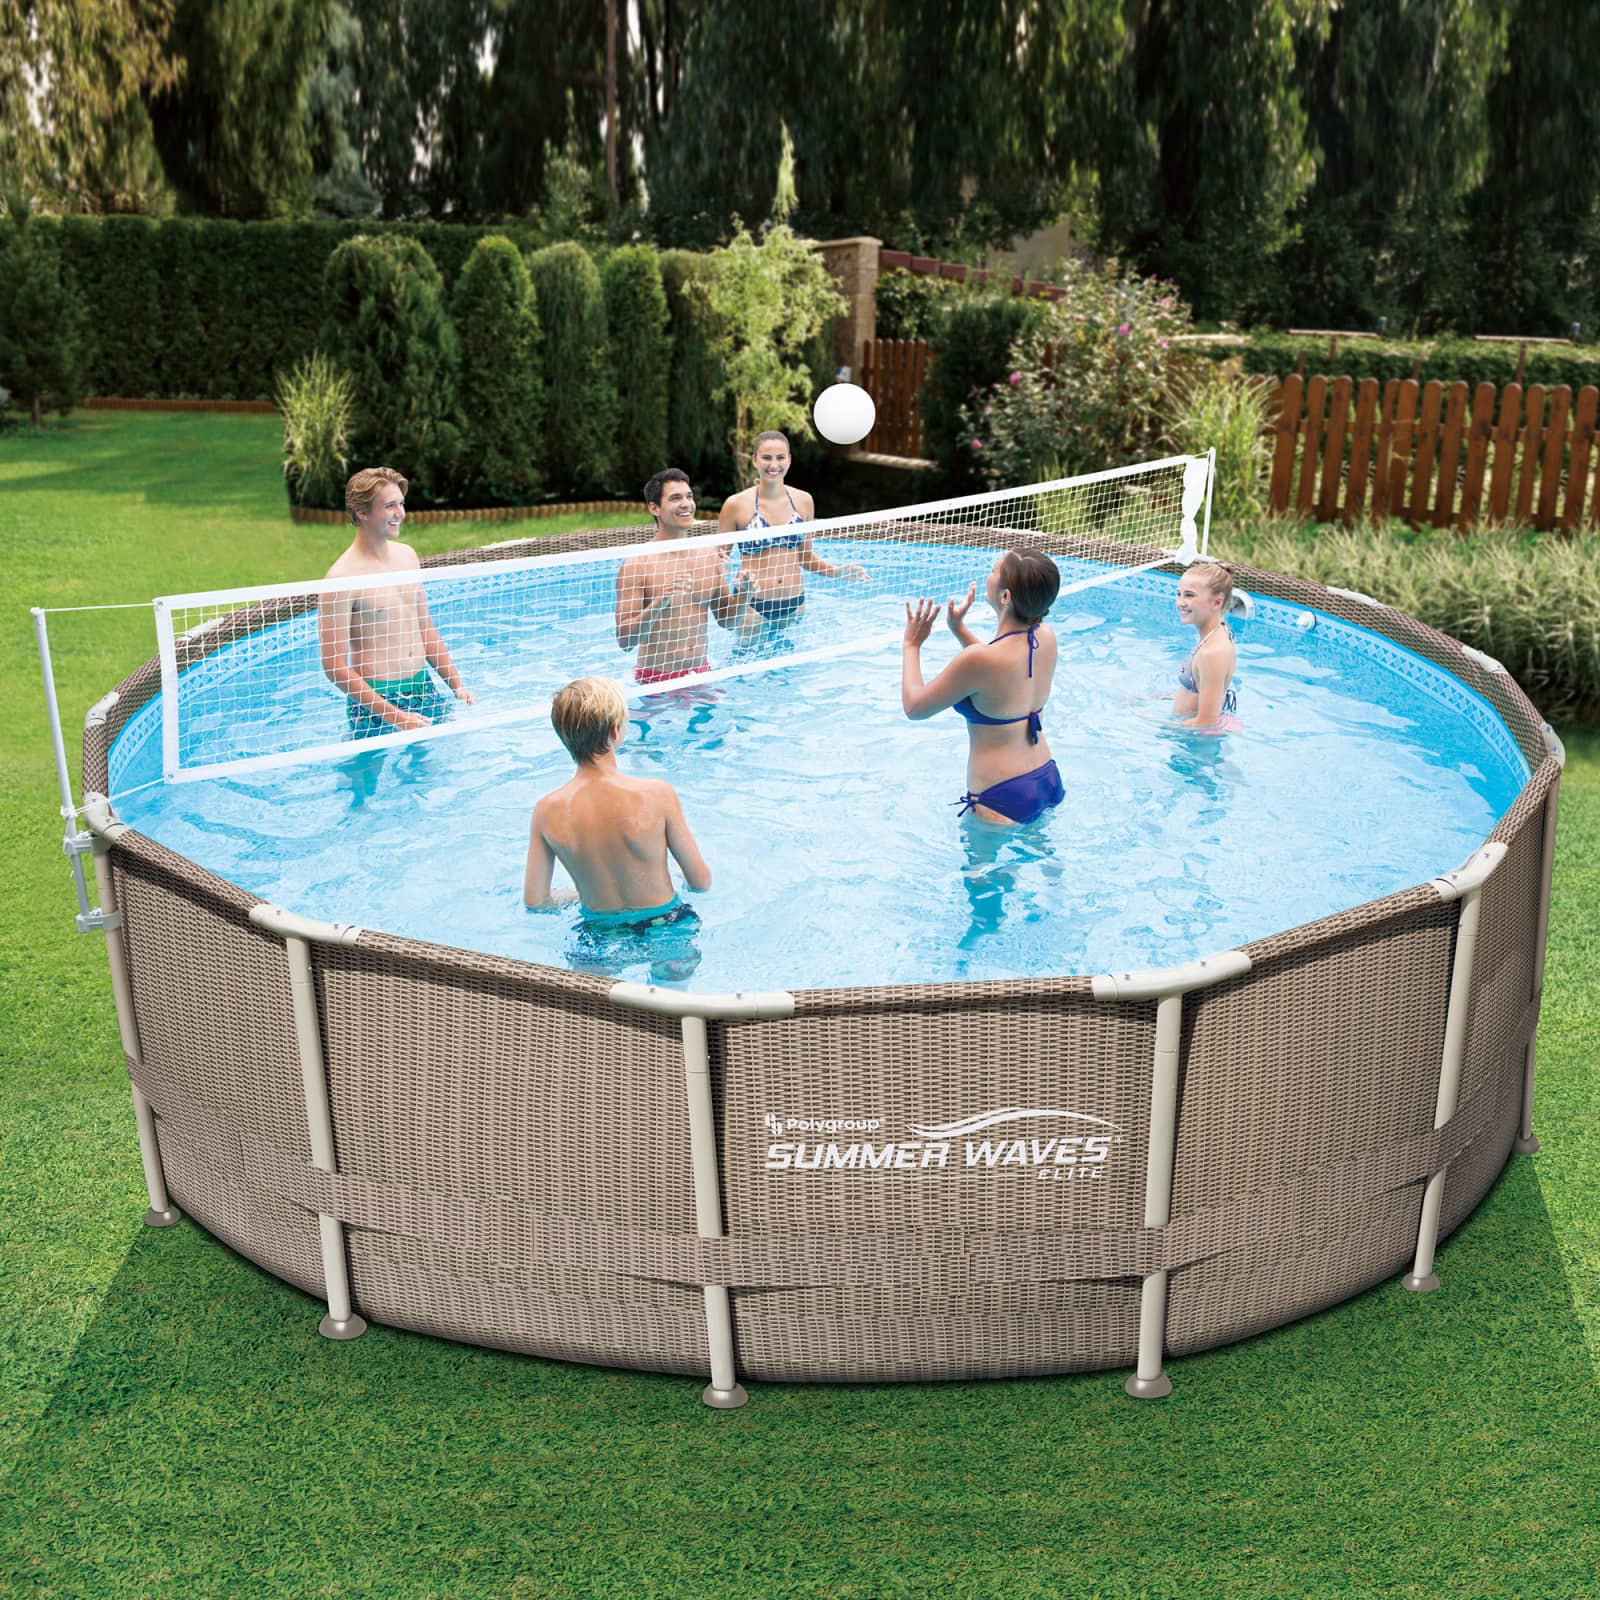 Summer Waves Volleyball Net for 10'-20' Metal Frame Above Ground Swimming Pools $9.99